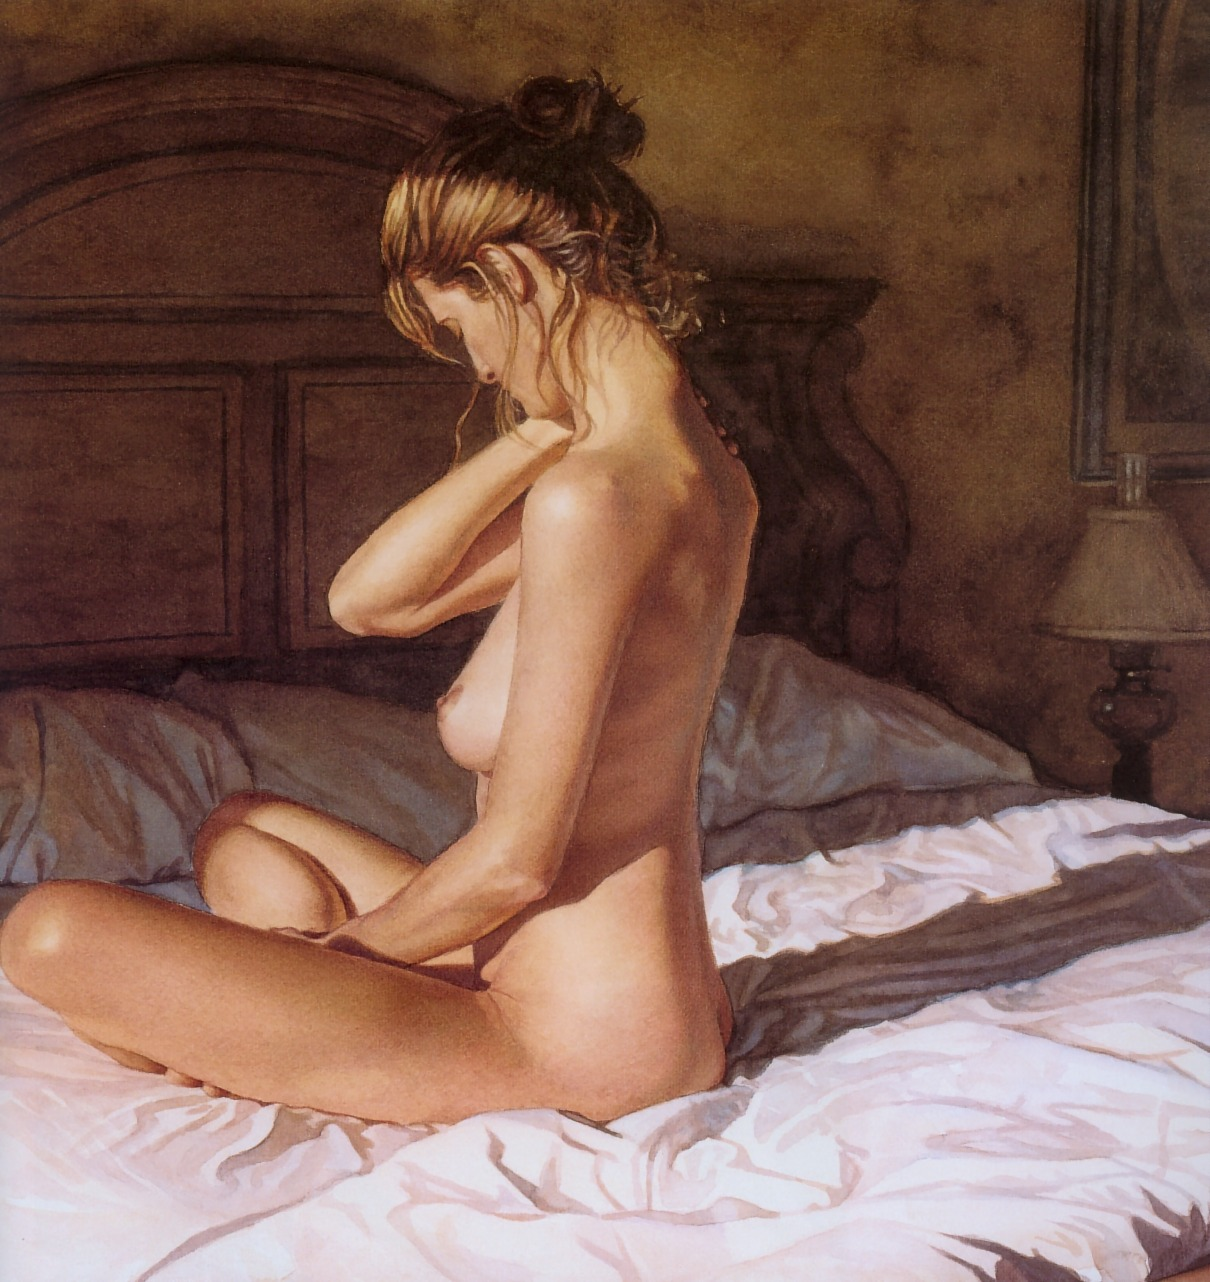 Steve Hanks- Casting her shadow